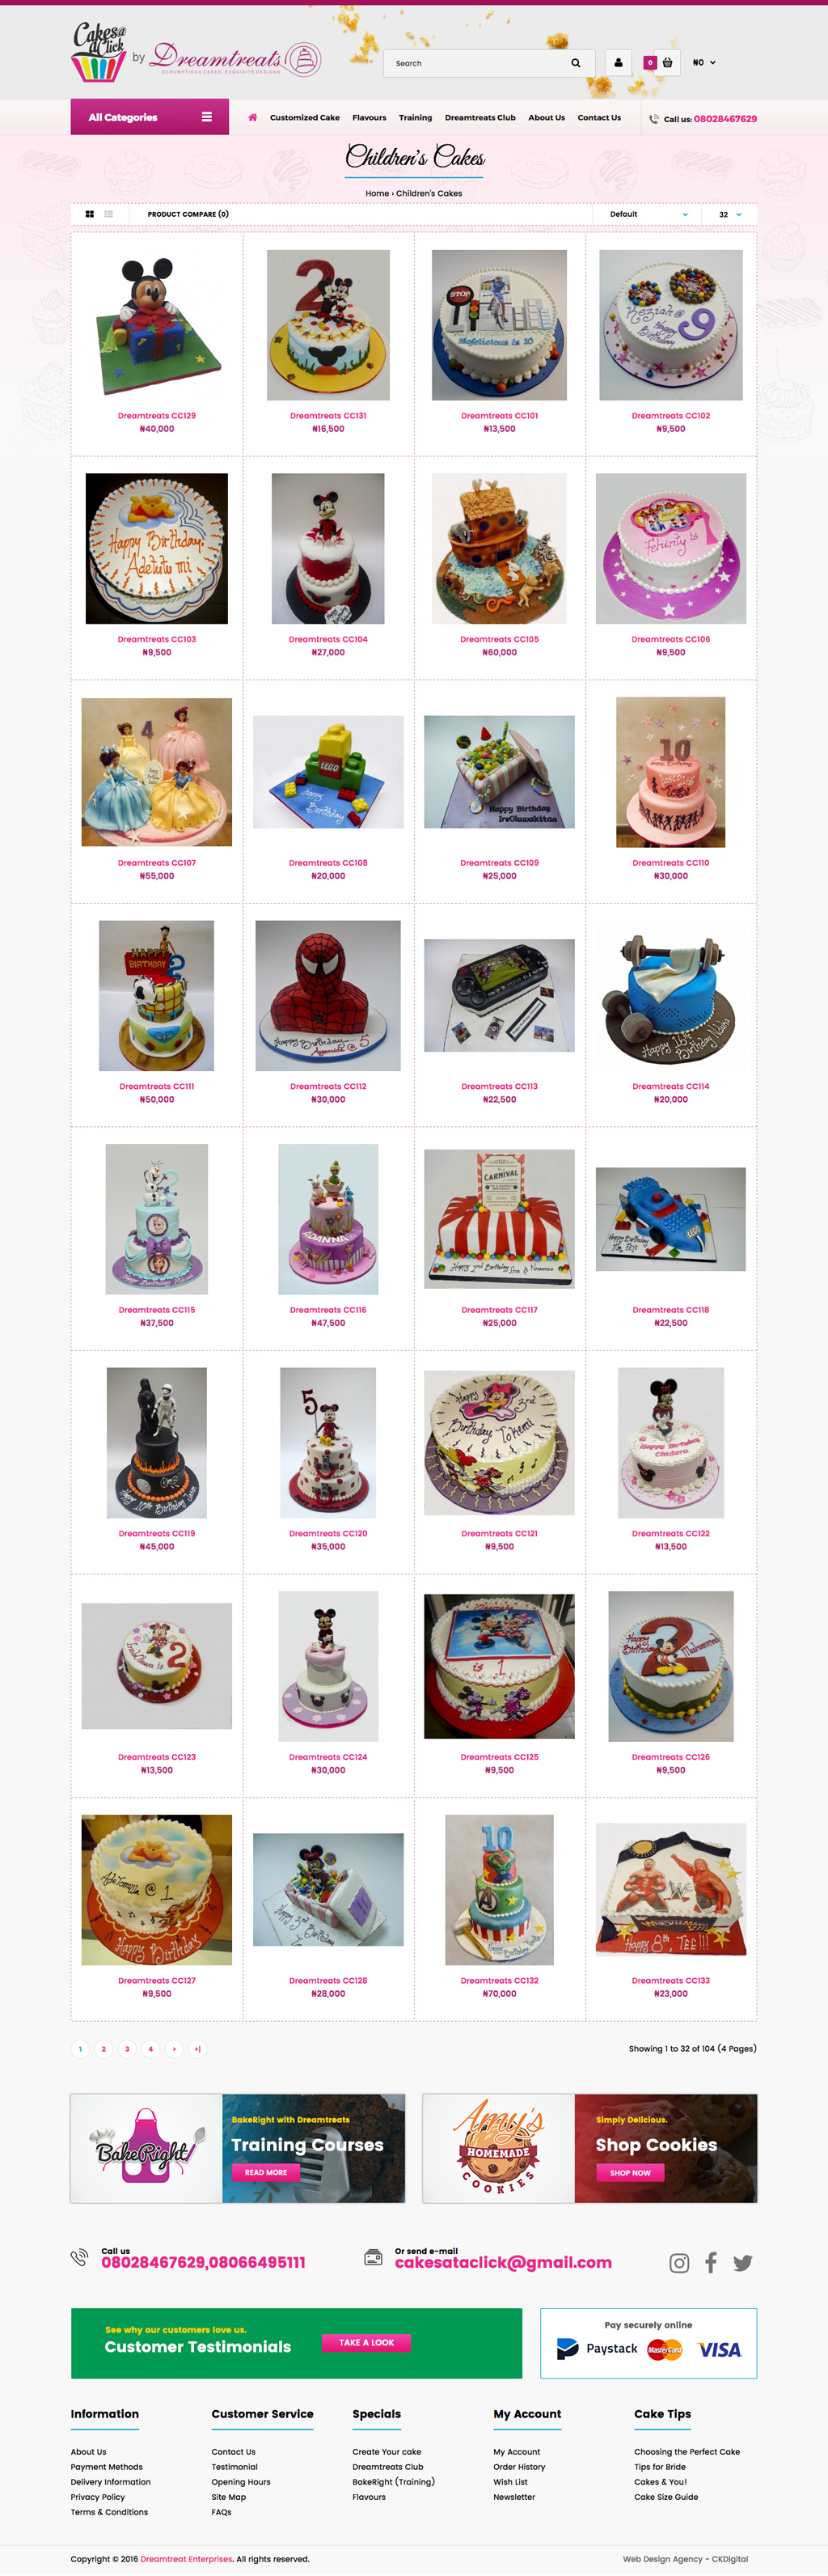 Dreamtreats Cakes Website Design - Category Page